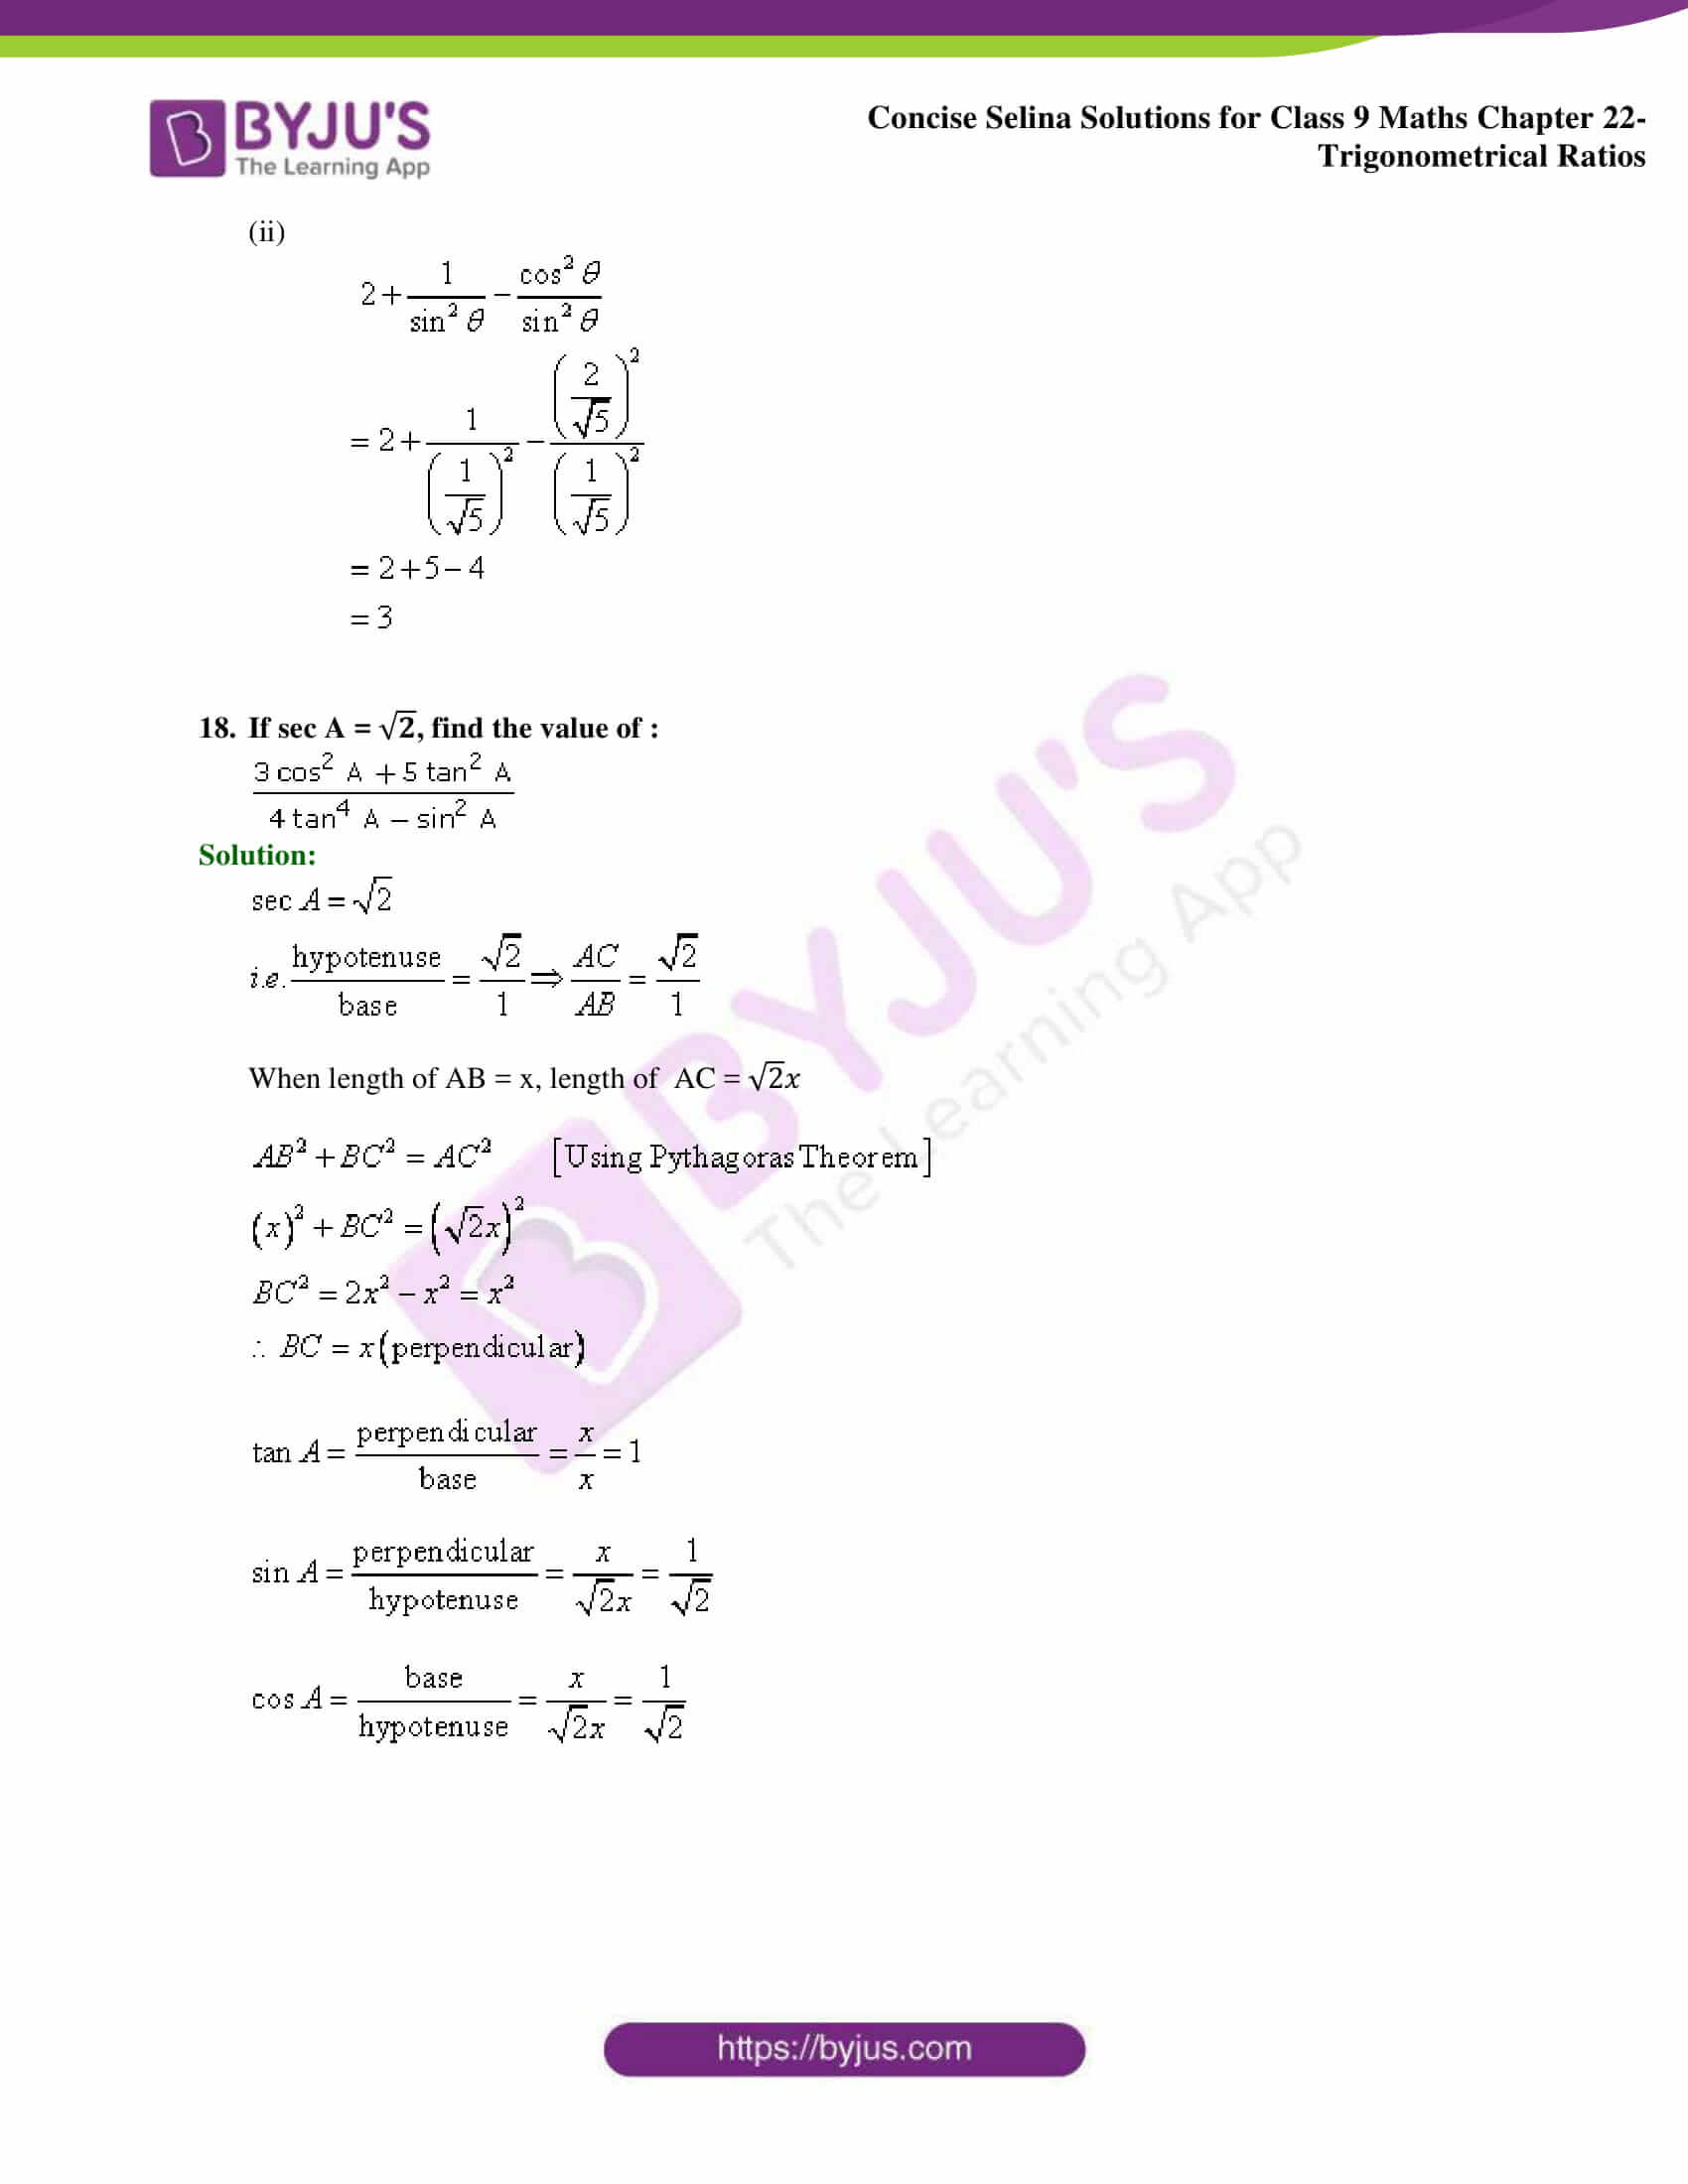 Concise Selina Solutions Class 9 Maths Chapter 22 Trigonometrical Ratios part 18